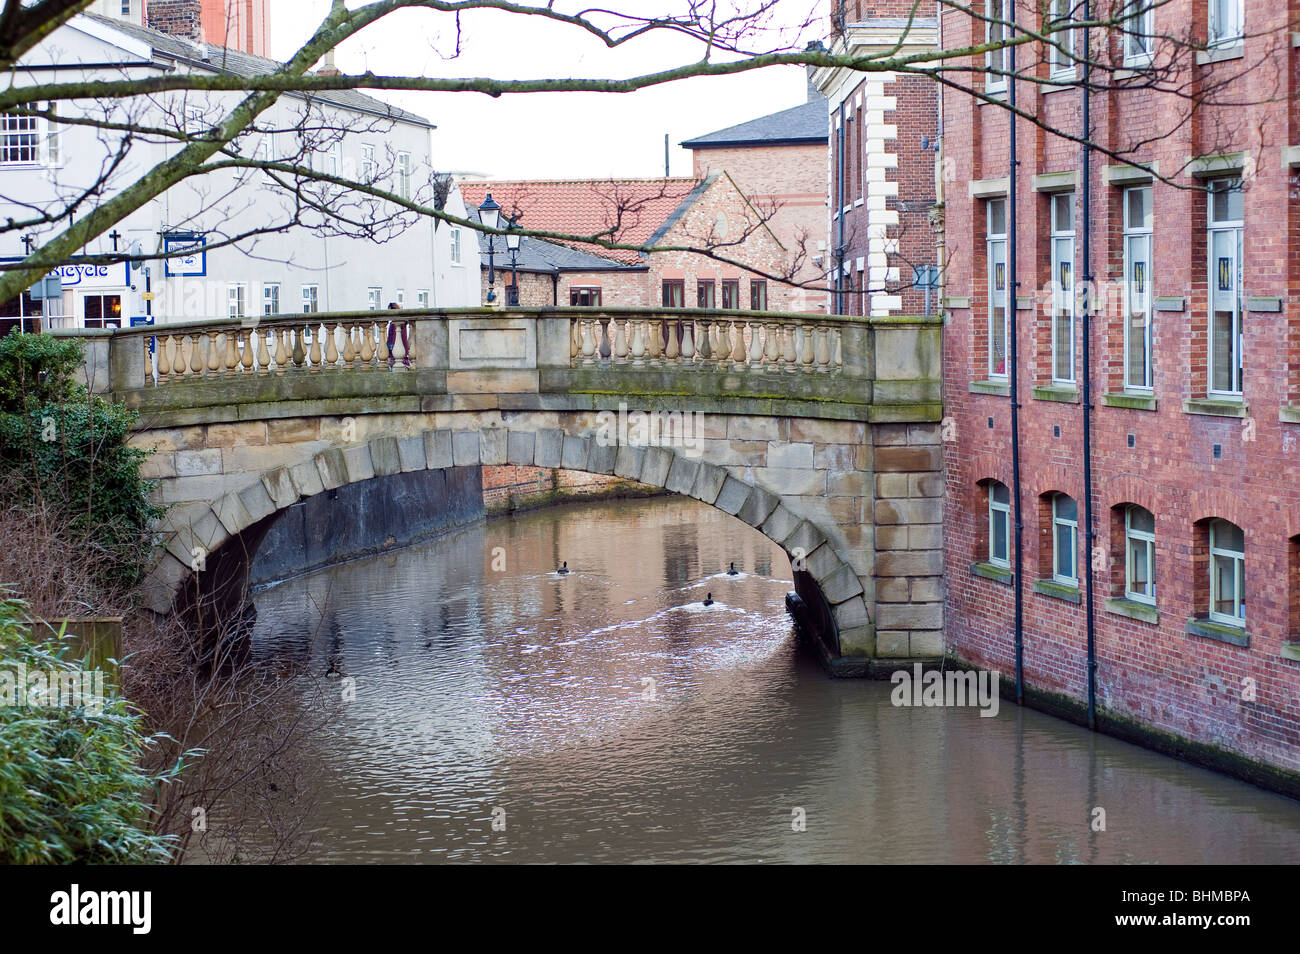 The Foss Bridge, a single Georgian gritstone arch with balusters, links the streets Fossgate and Walmgate. York - Stock Image